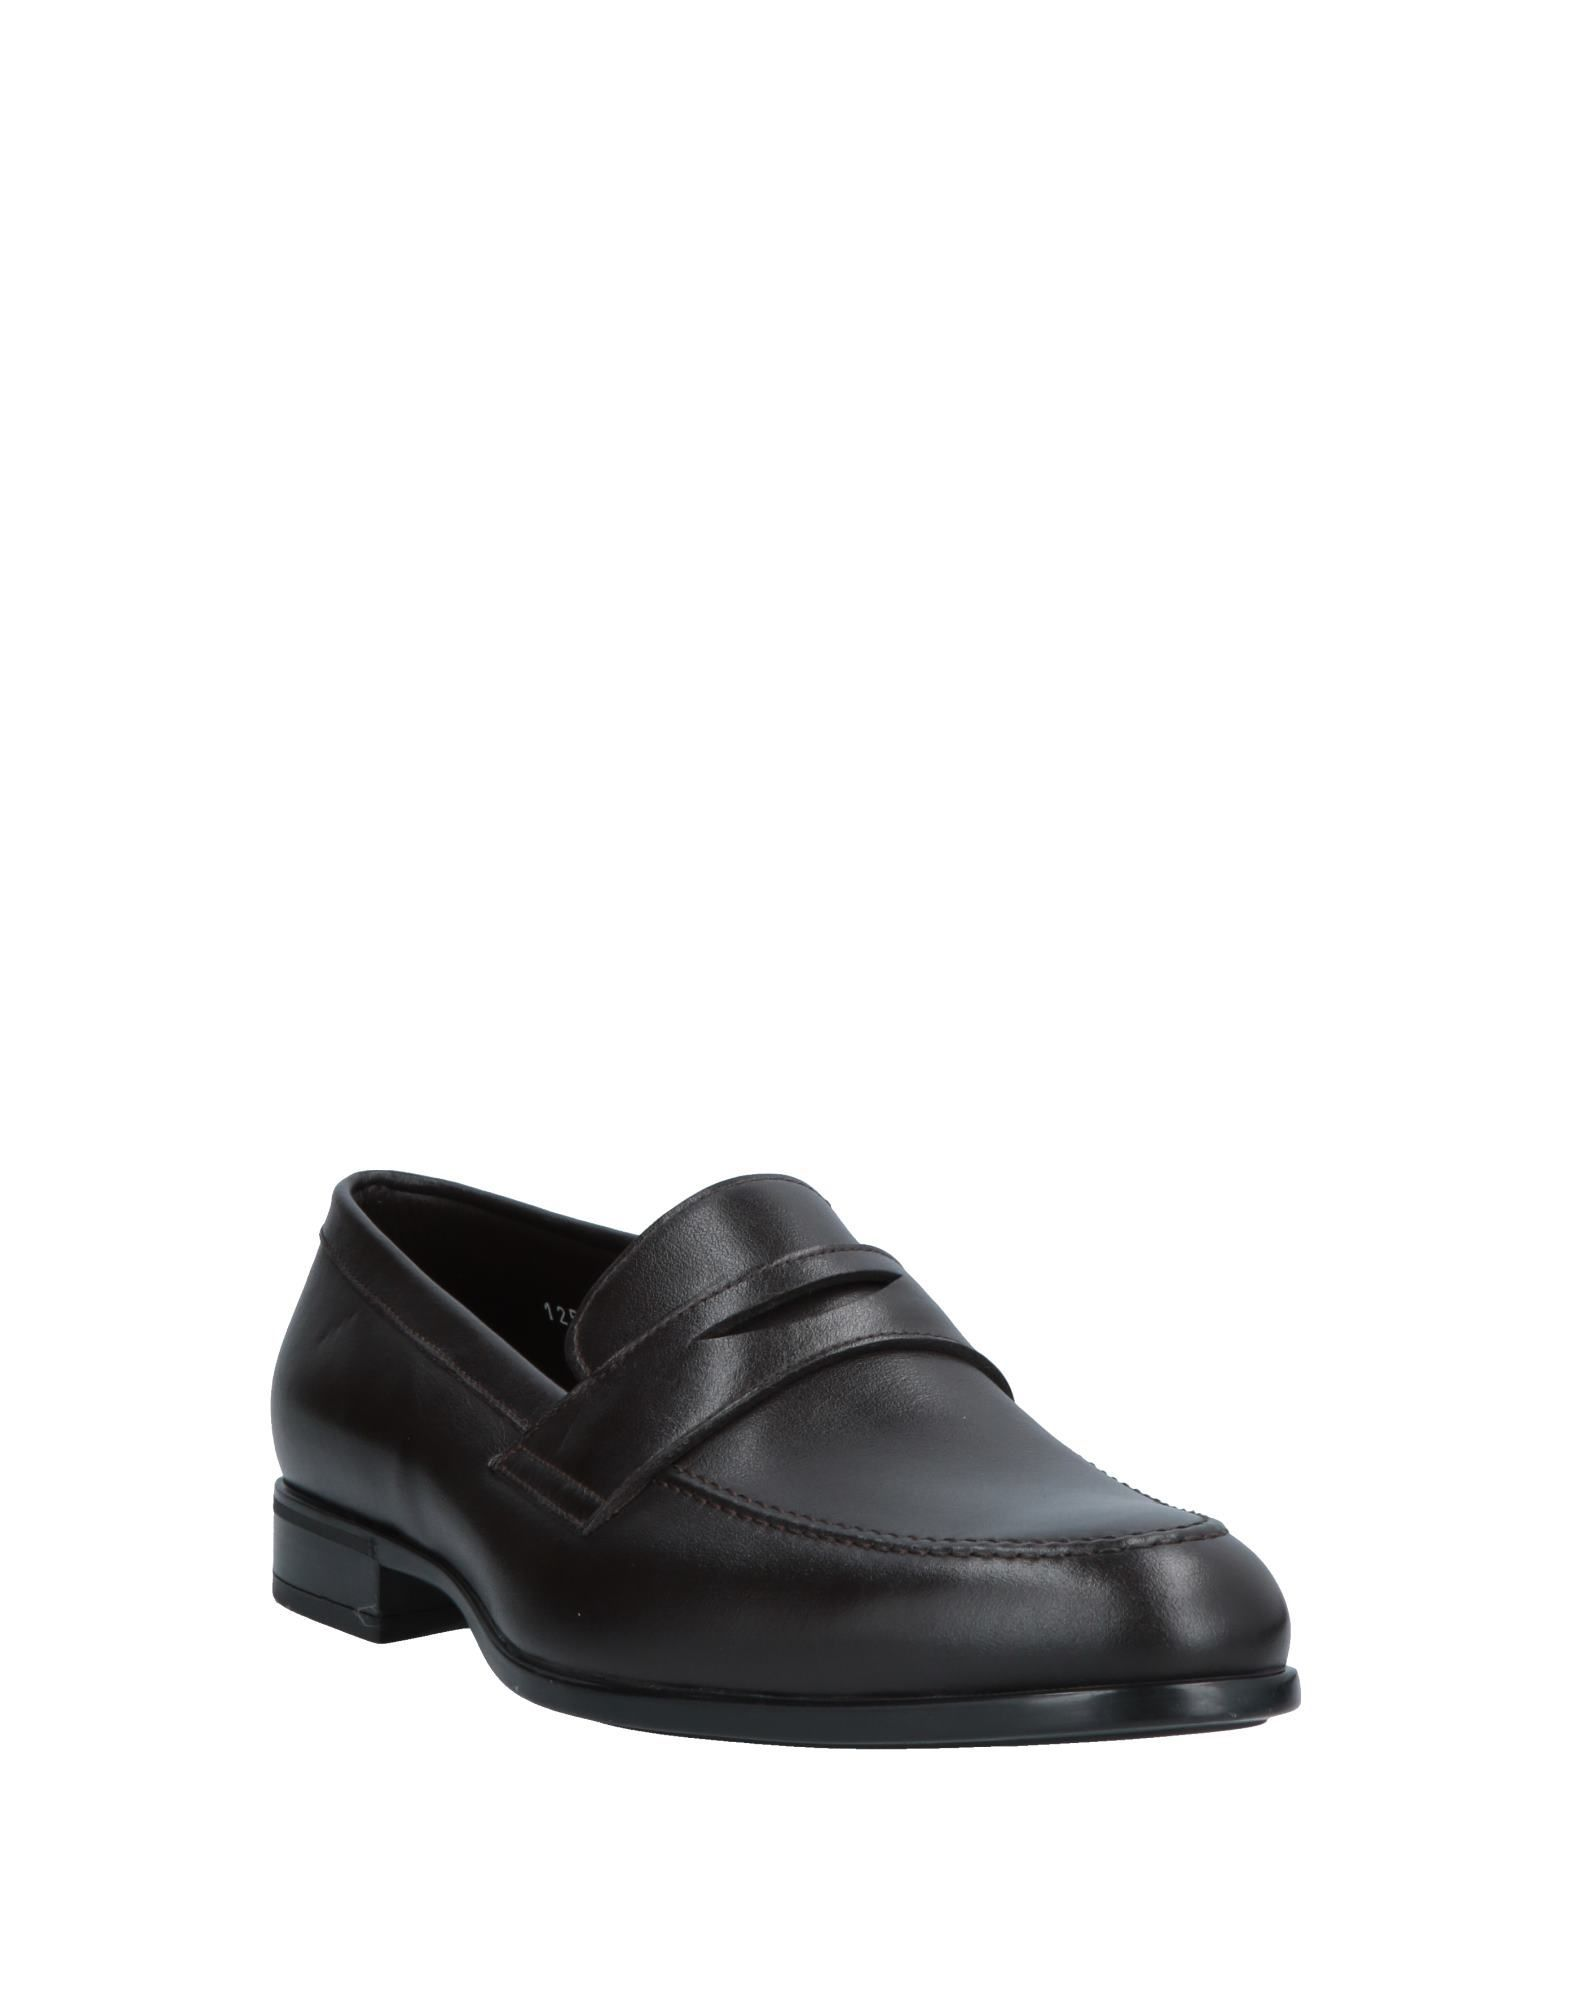 Doucal's Dark Brown Calf Leather Loafers